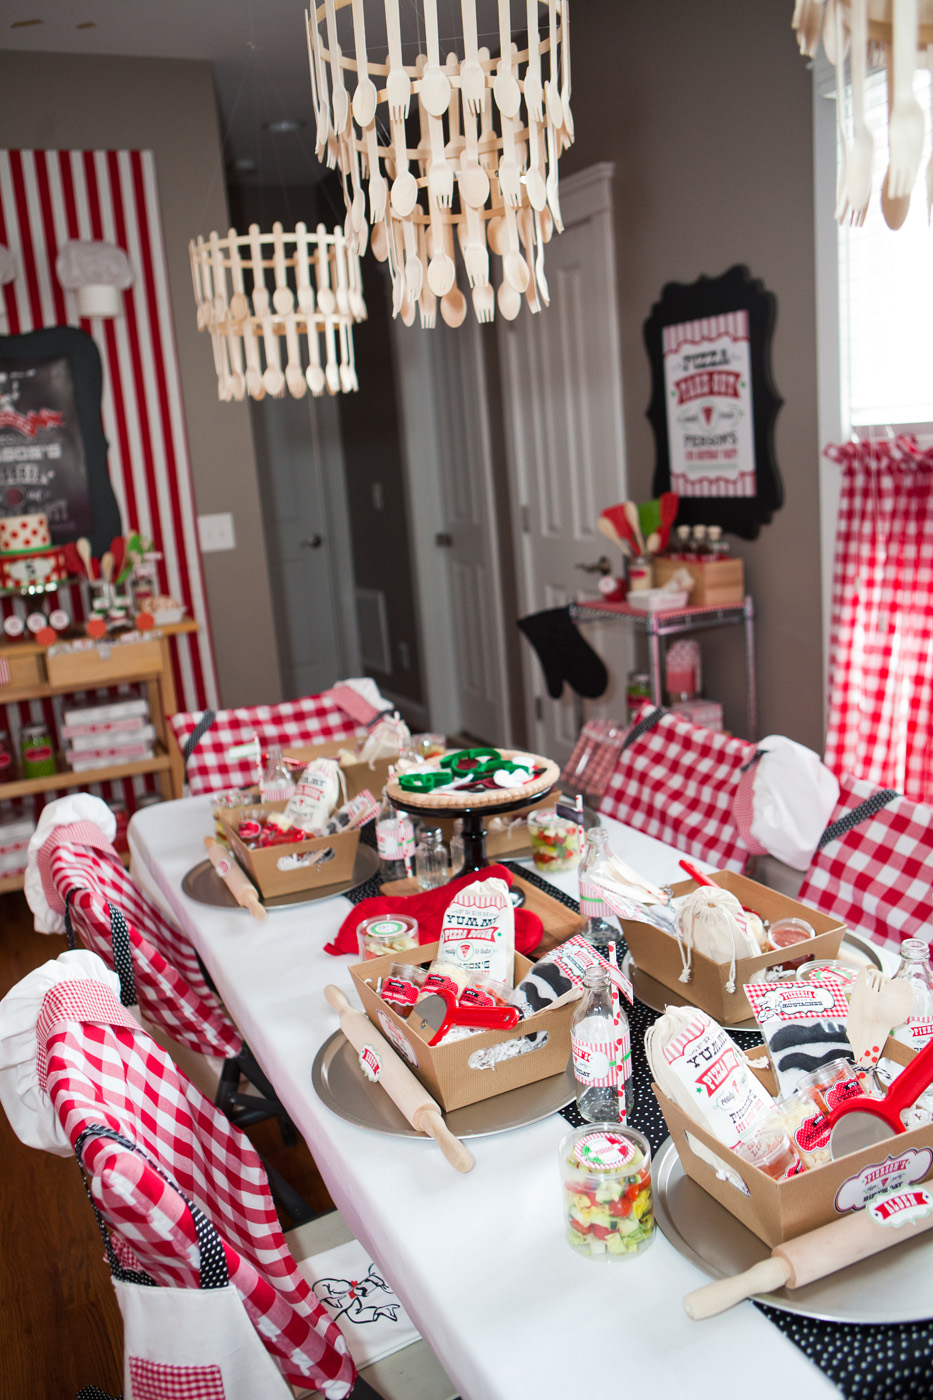 Pierson 39 s pizzeria little chef pizza birthday party for Chef themed kitchen ideas